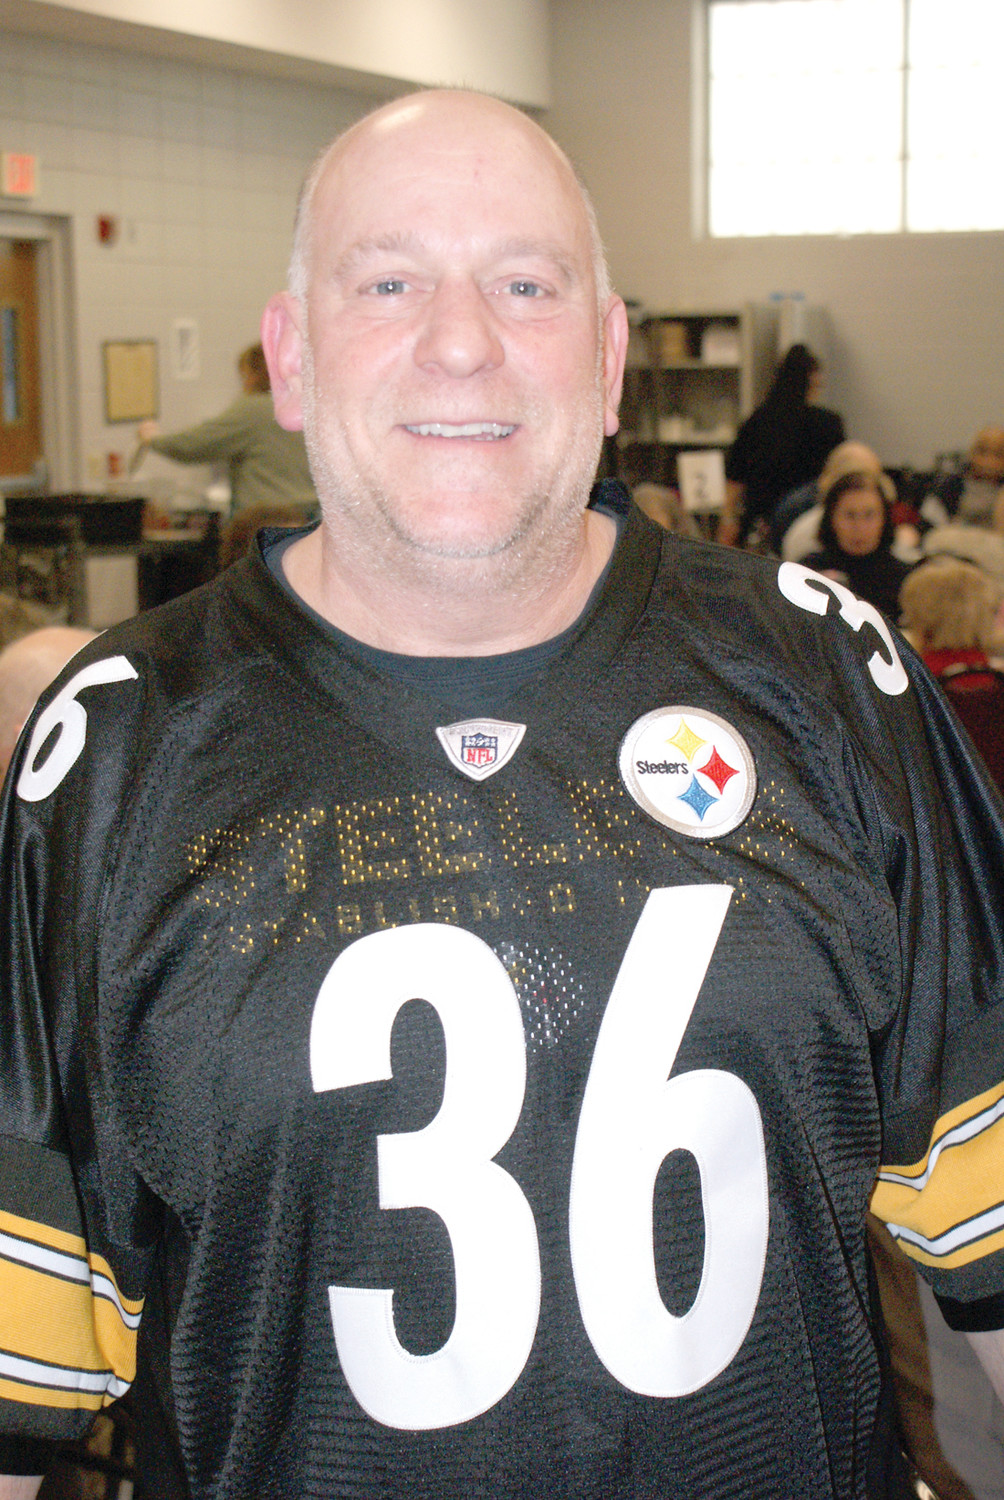 CONFUSED: Head Chef, Ray Sinapi at the Cranston Senior Center, had a difficult time understanding that his favorite team from childhood, Pittsburgh Steelers, were not in the Super Bowl this year.